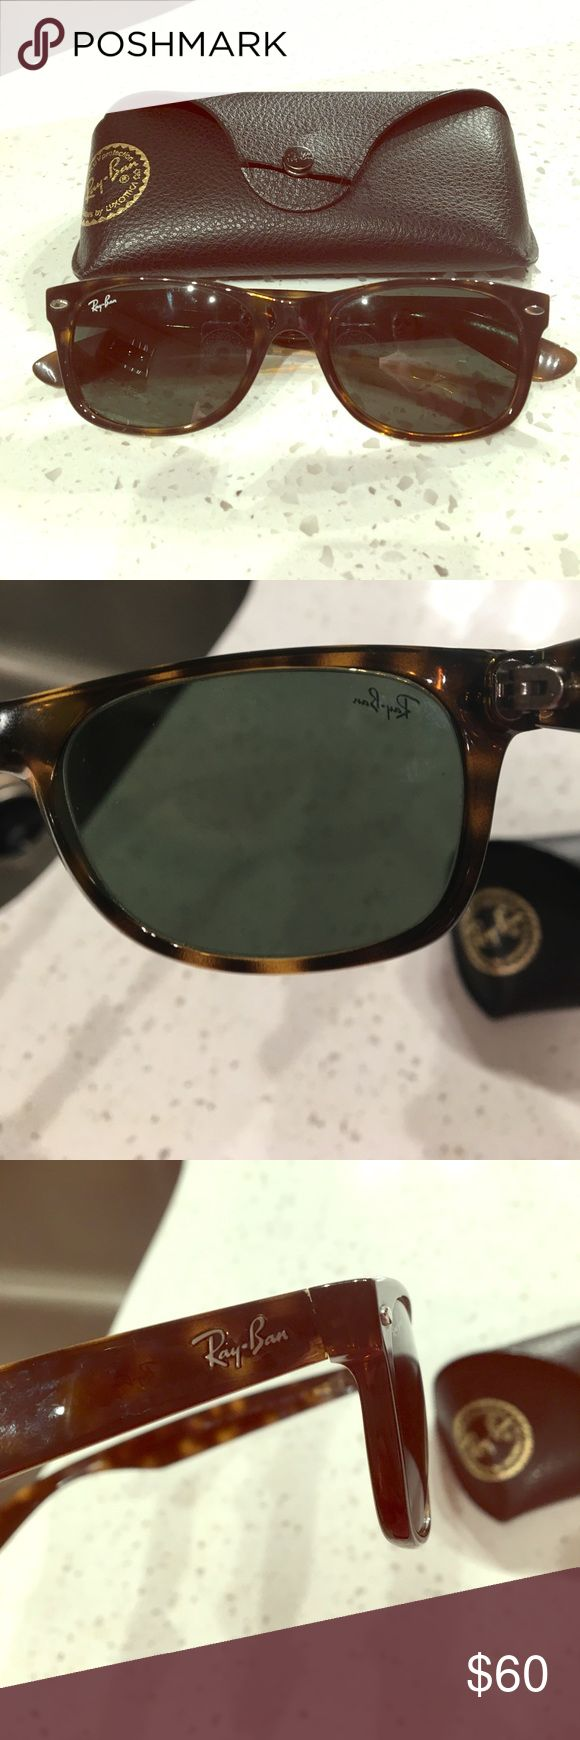 Ray-Ban Wayfarer Tortoise Sunglasses Tortoise Ray Ban's with almost green-like tint on lense (shown in pic) these are the smaller sized ones. Selling with case - clasp slightly damaged on case. Ray-Ban Accessories Sunglasses